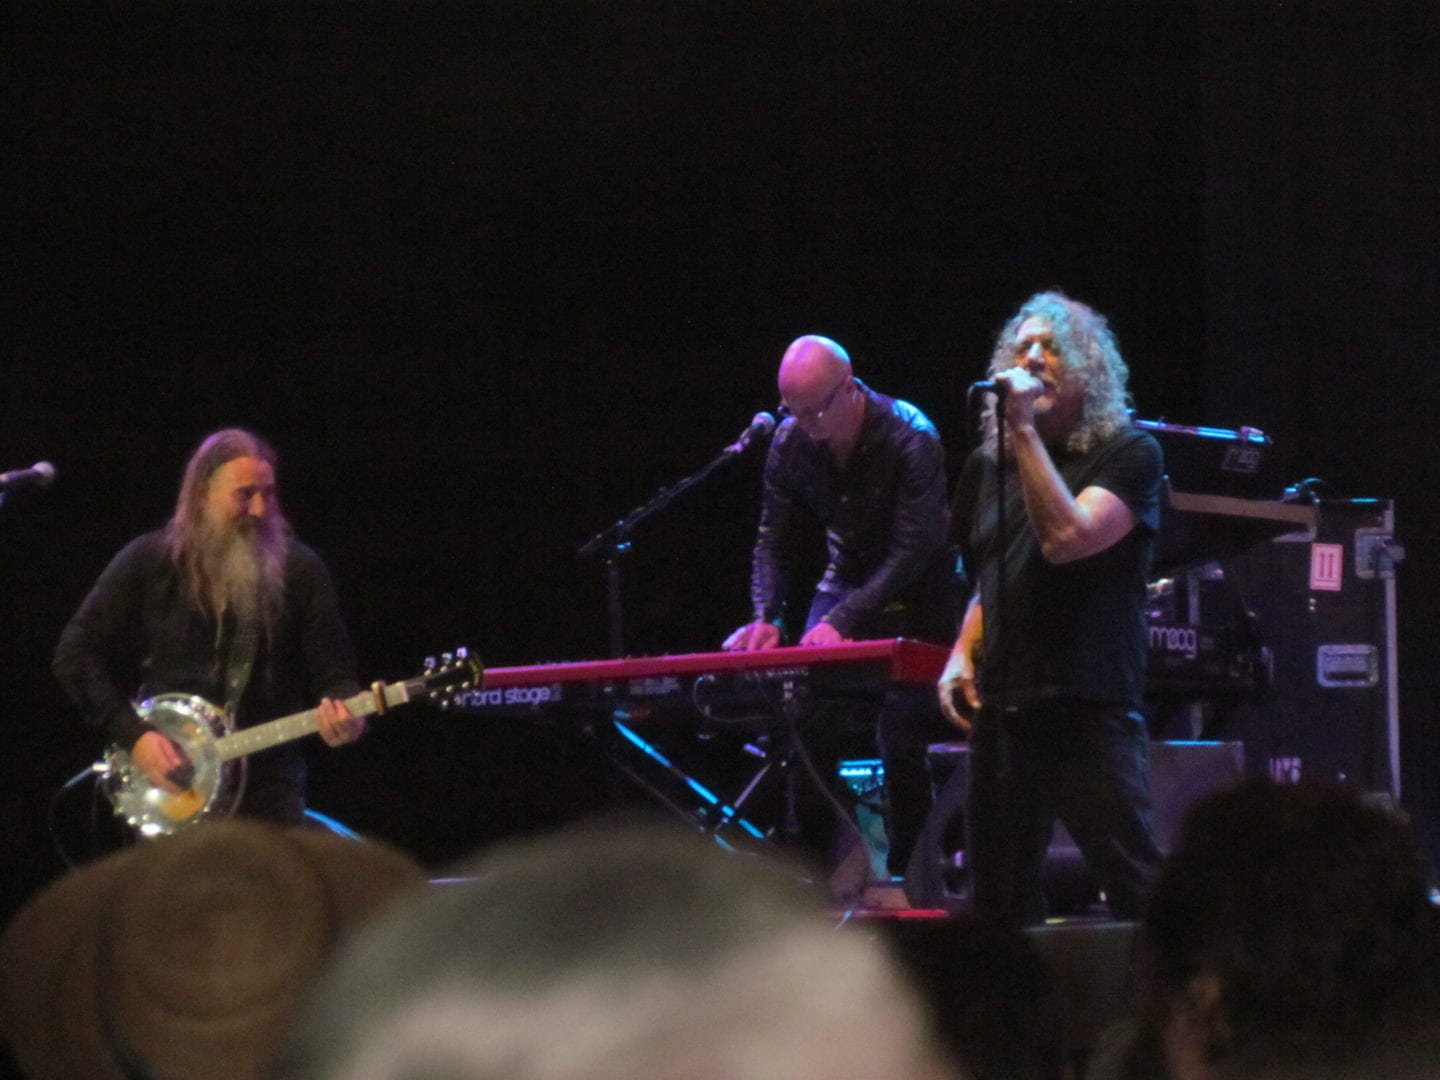 Robert Plant performing with his band